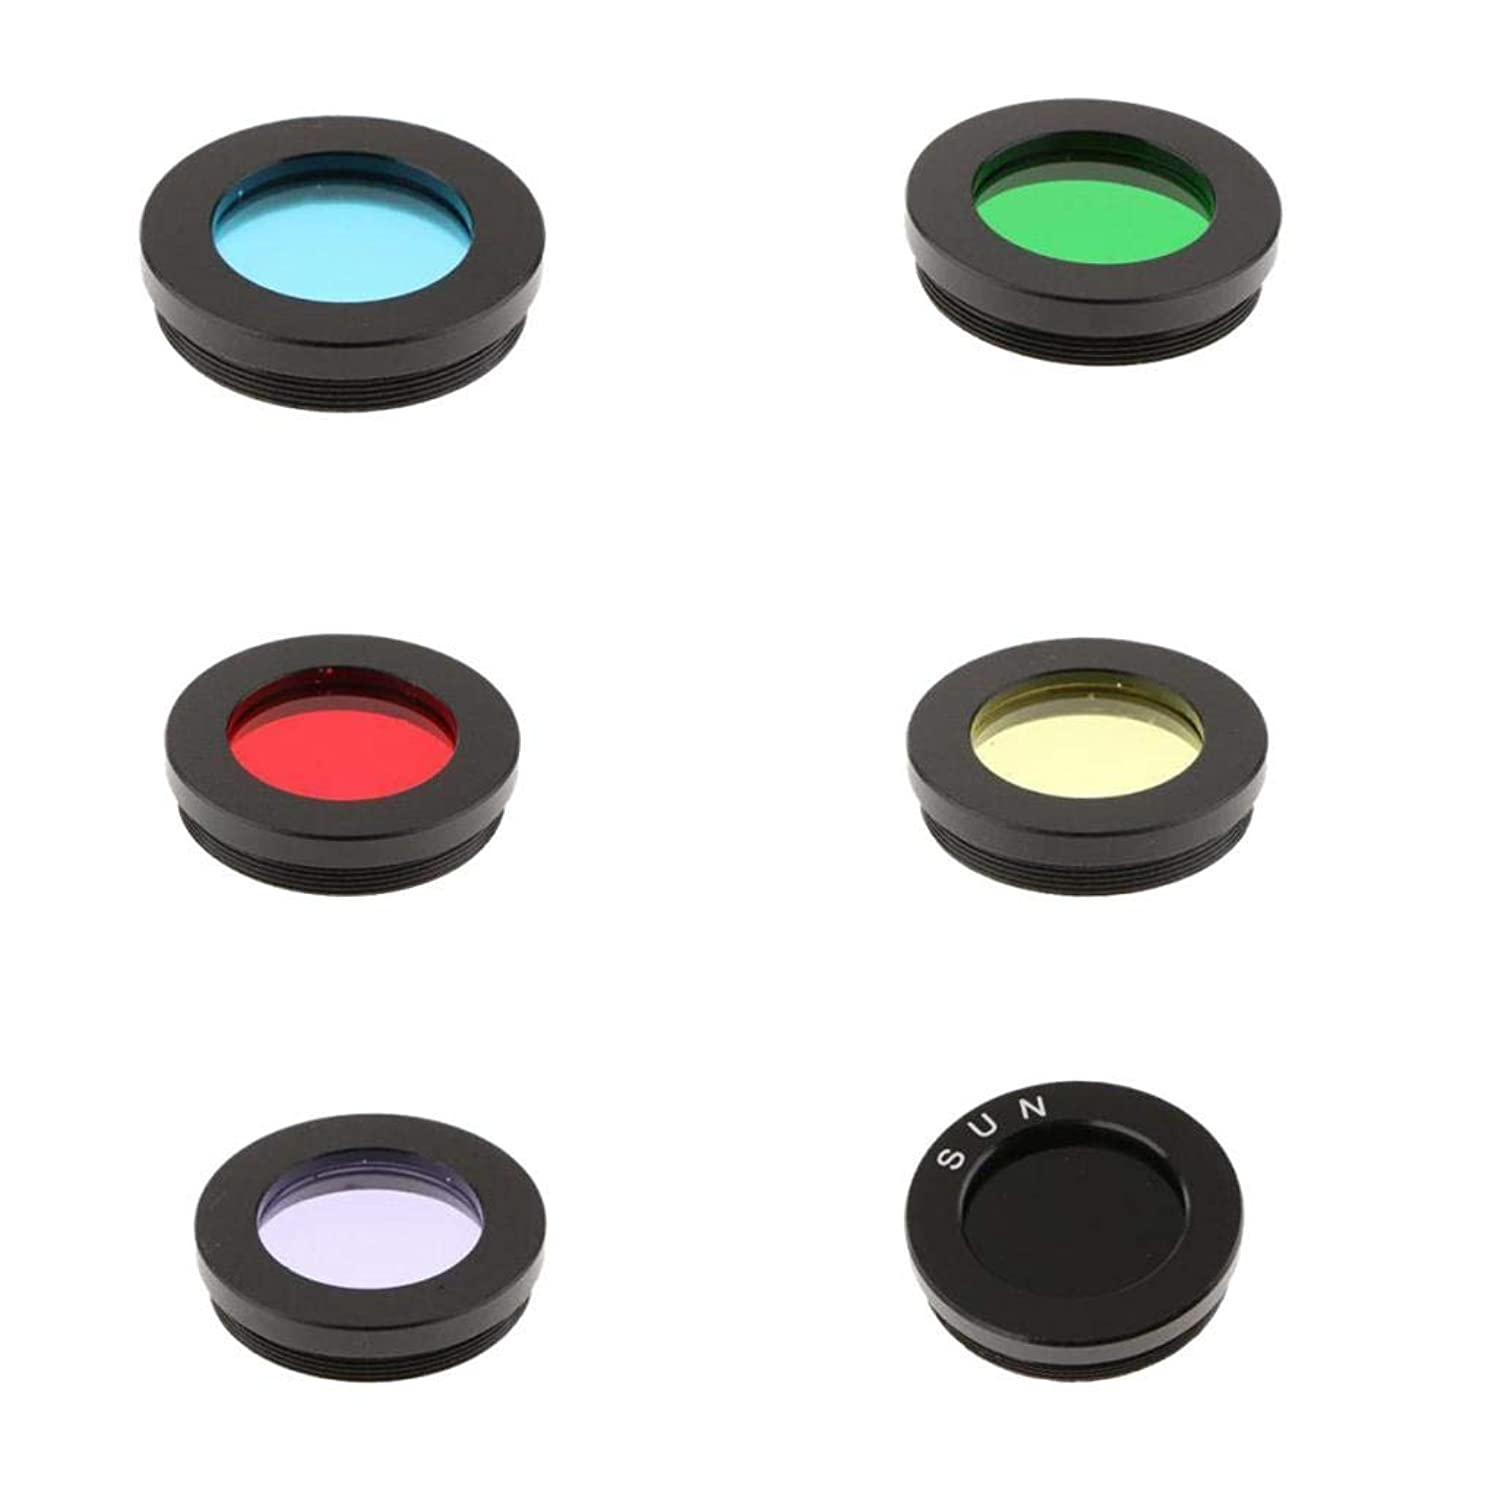 kesoto 6 Colors 1.25inch Telescope Eyepiece Lens Color Filter Set for Astronomy Accessory Kit Moon Planet Sky Object Metal